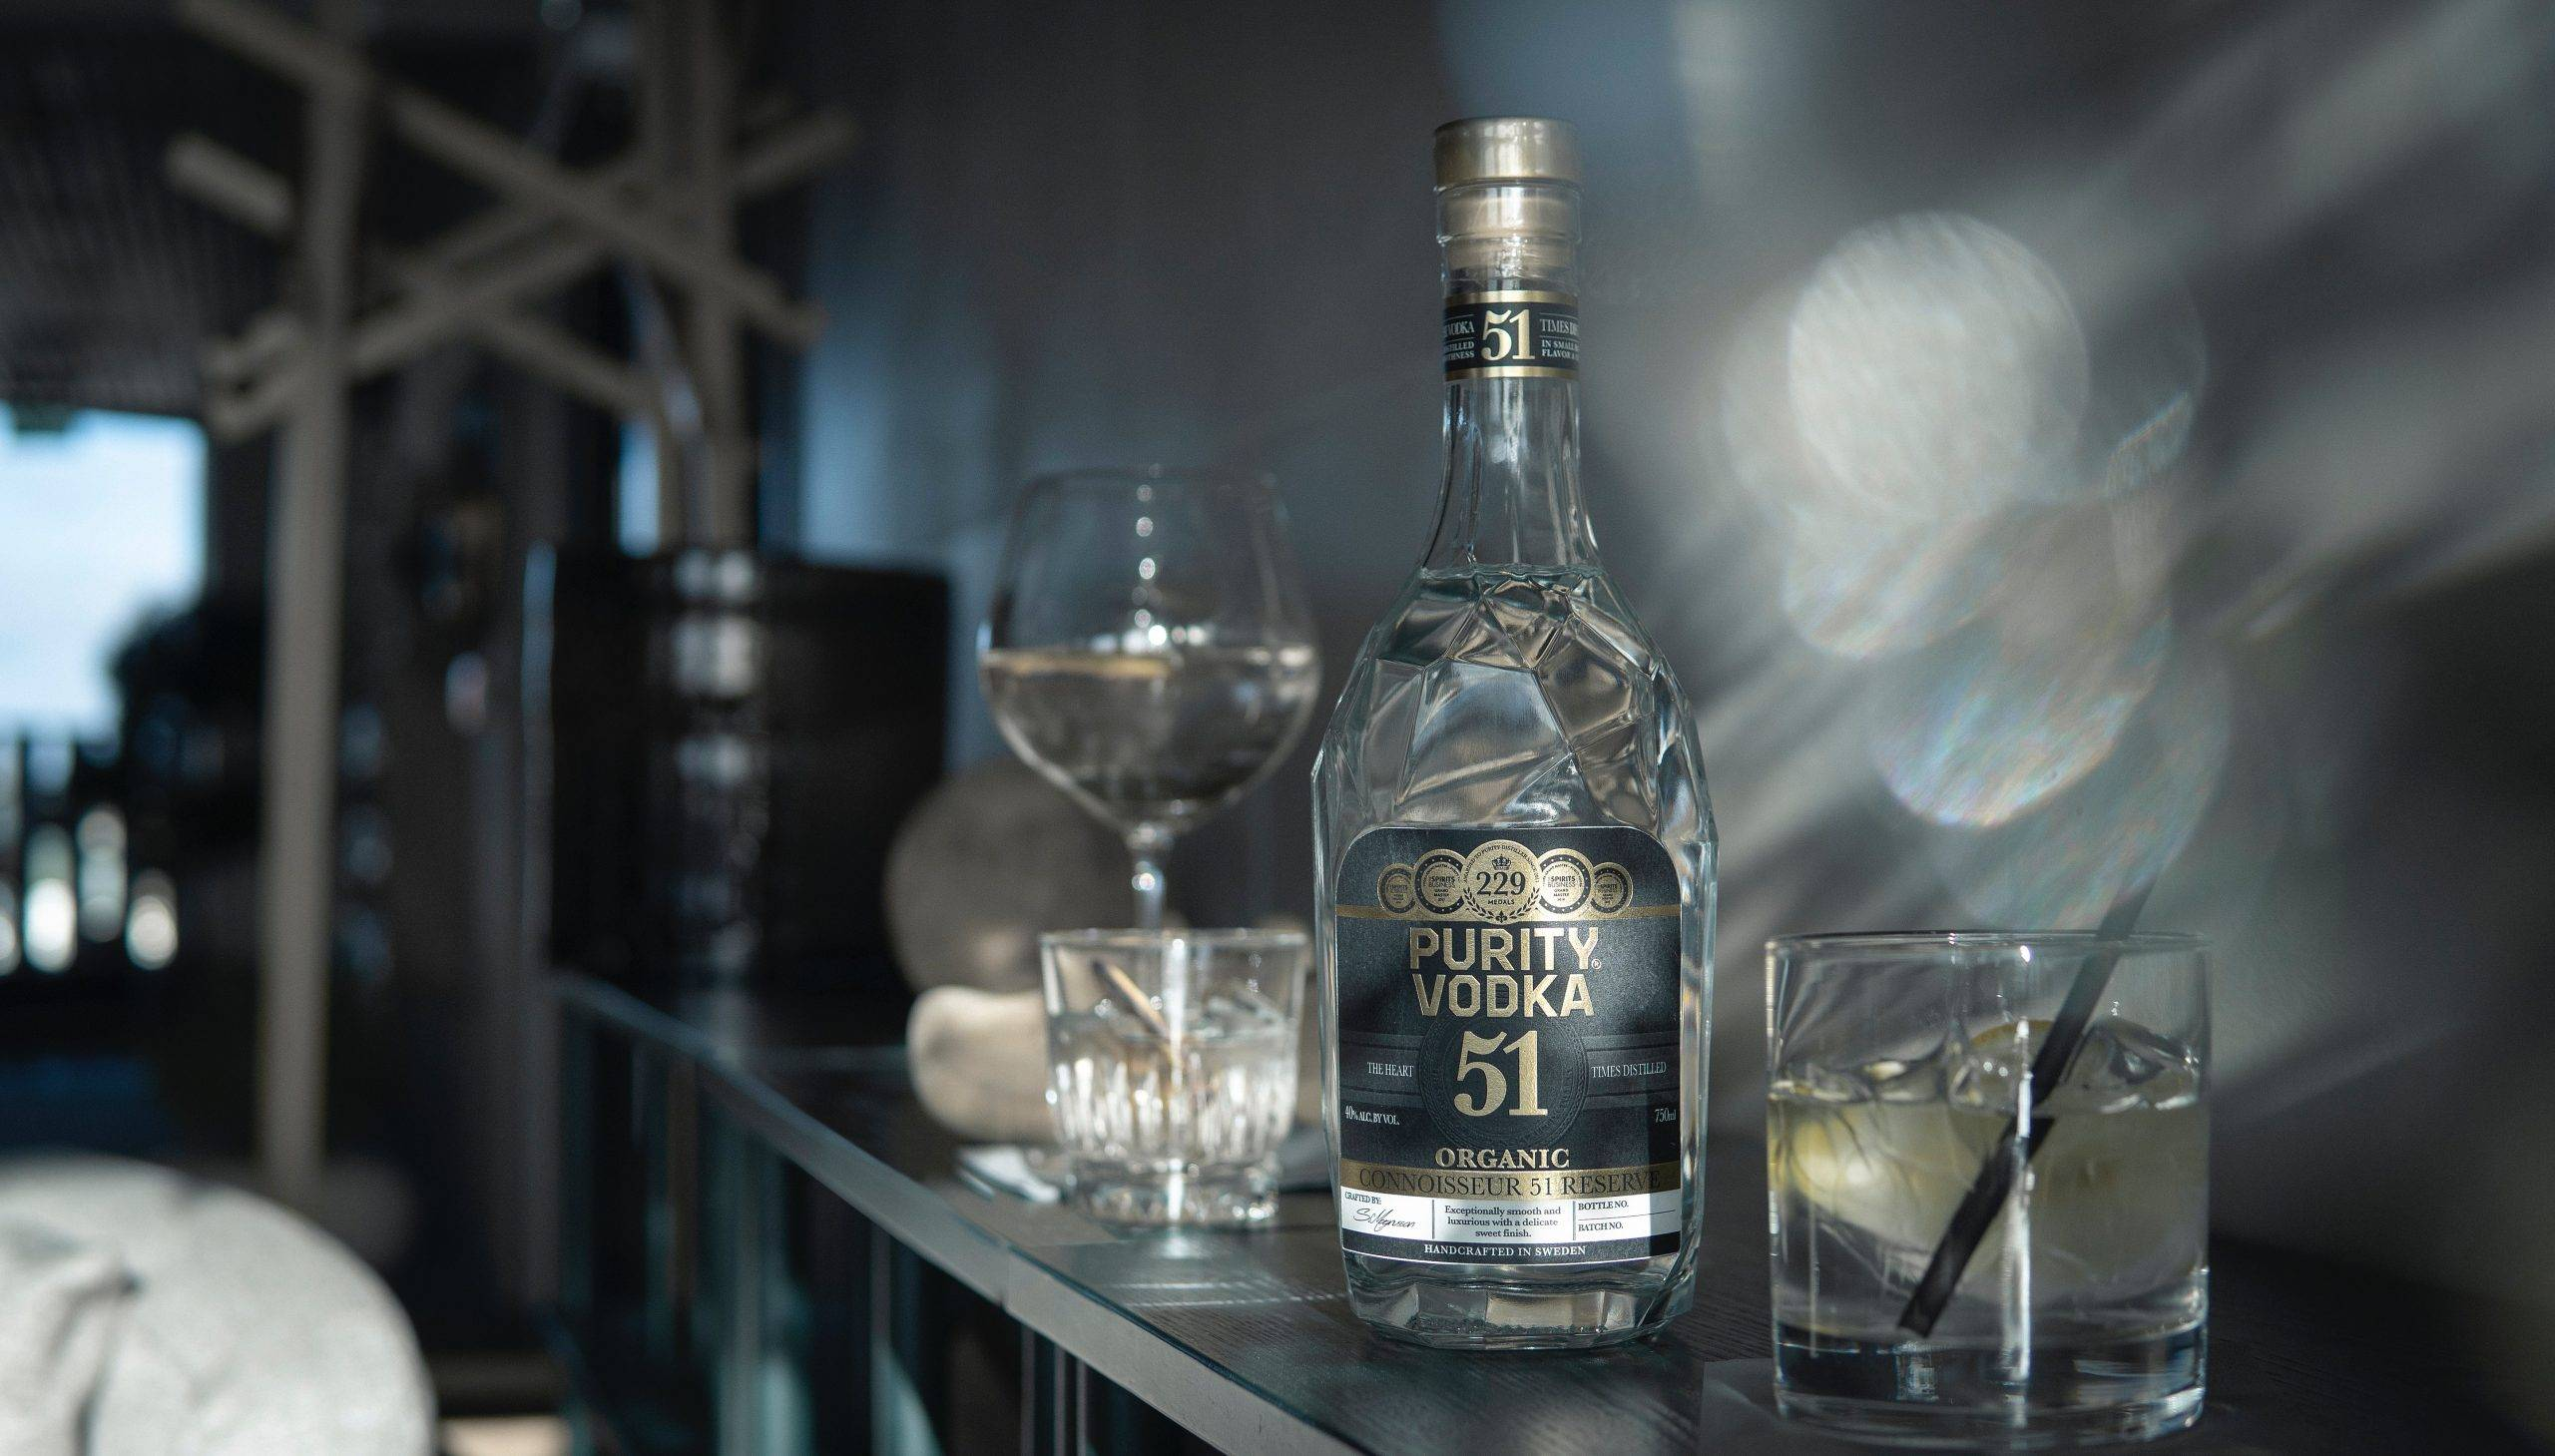 Vodka: Crystal Clear Smoothness